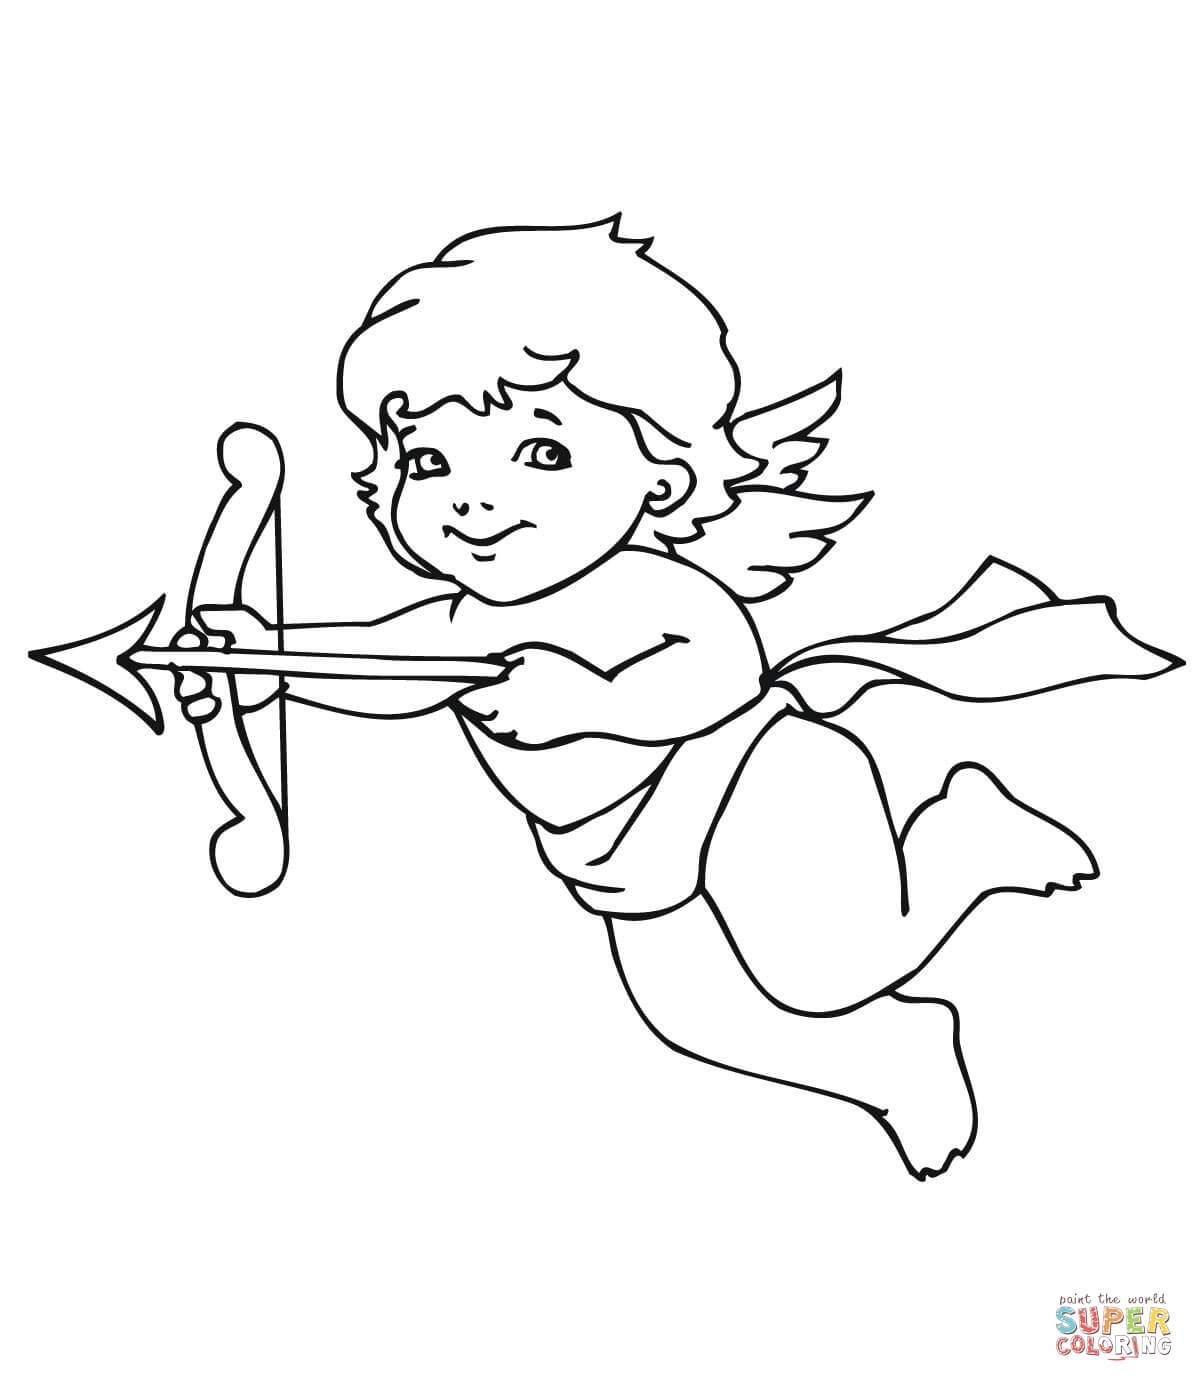 cupid coloring pages - cupid outline coloring pagestml